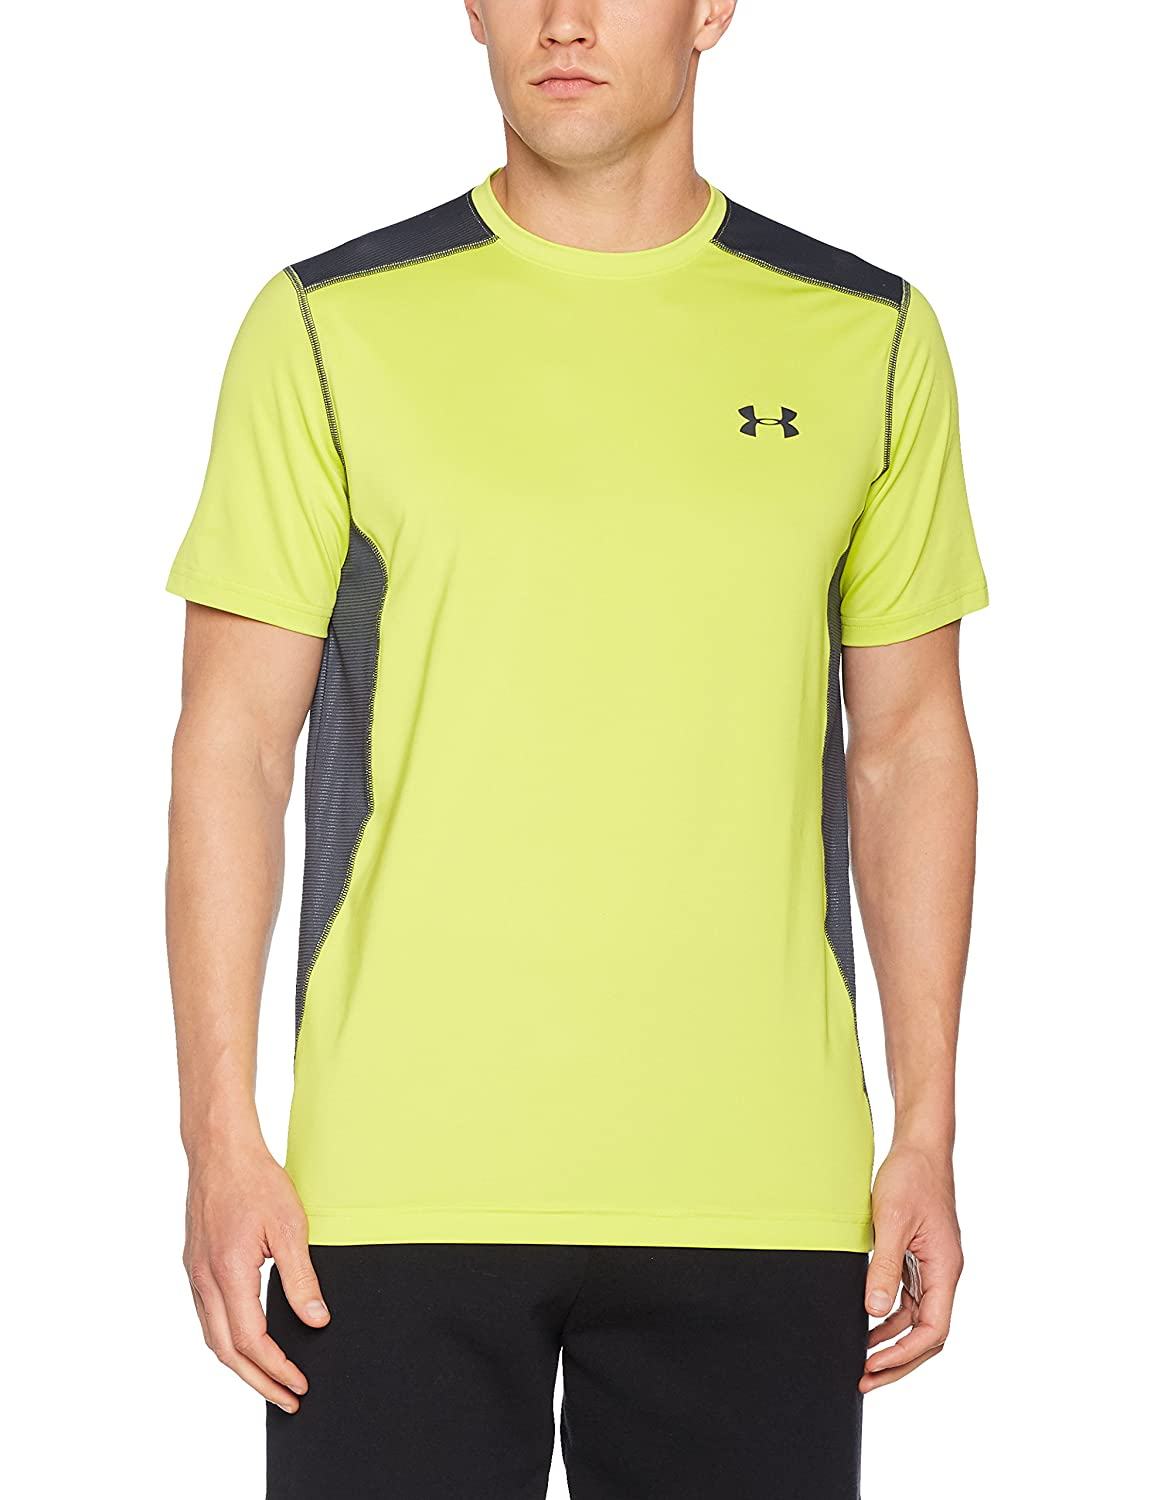 (アンダーアーマー) UNDER ARMOUR ヒットヒートギアSS(トレーニング/Tシャツ/MEN)[1257466] B01MEHLJDA 4L|Smash Yellow/Stealth Gray Smash Yellow/Stealth Gray 4L